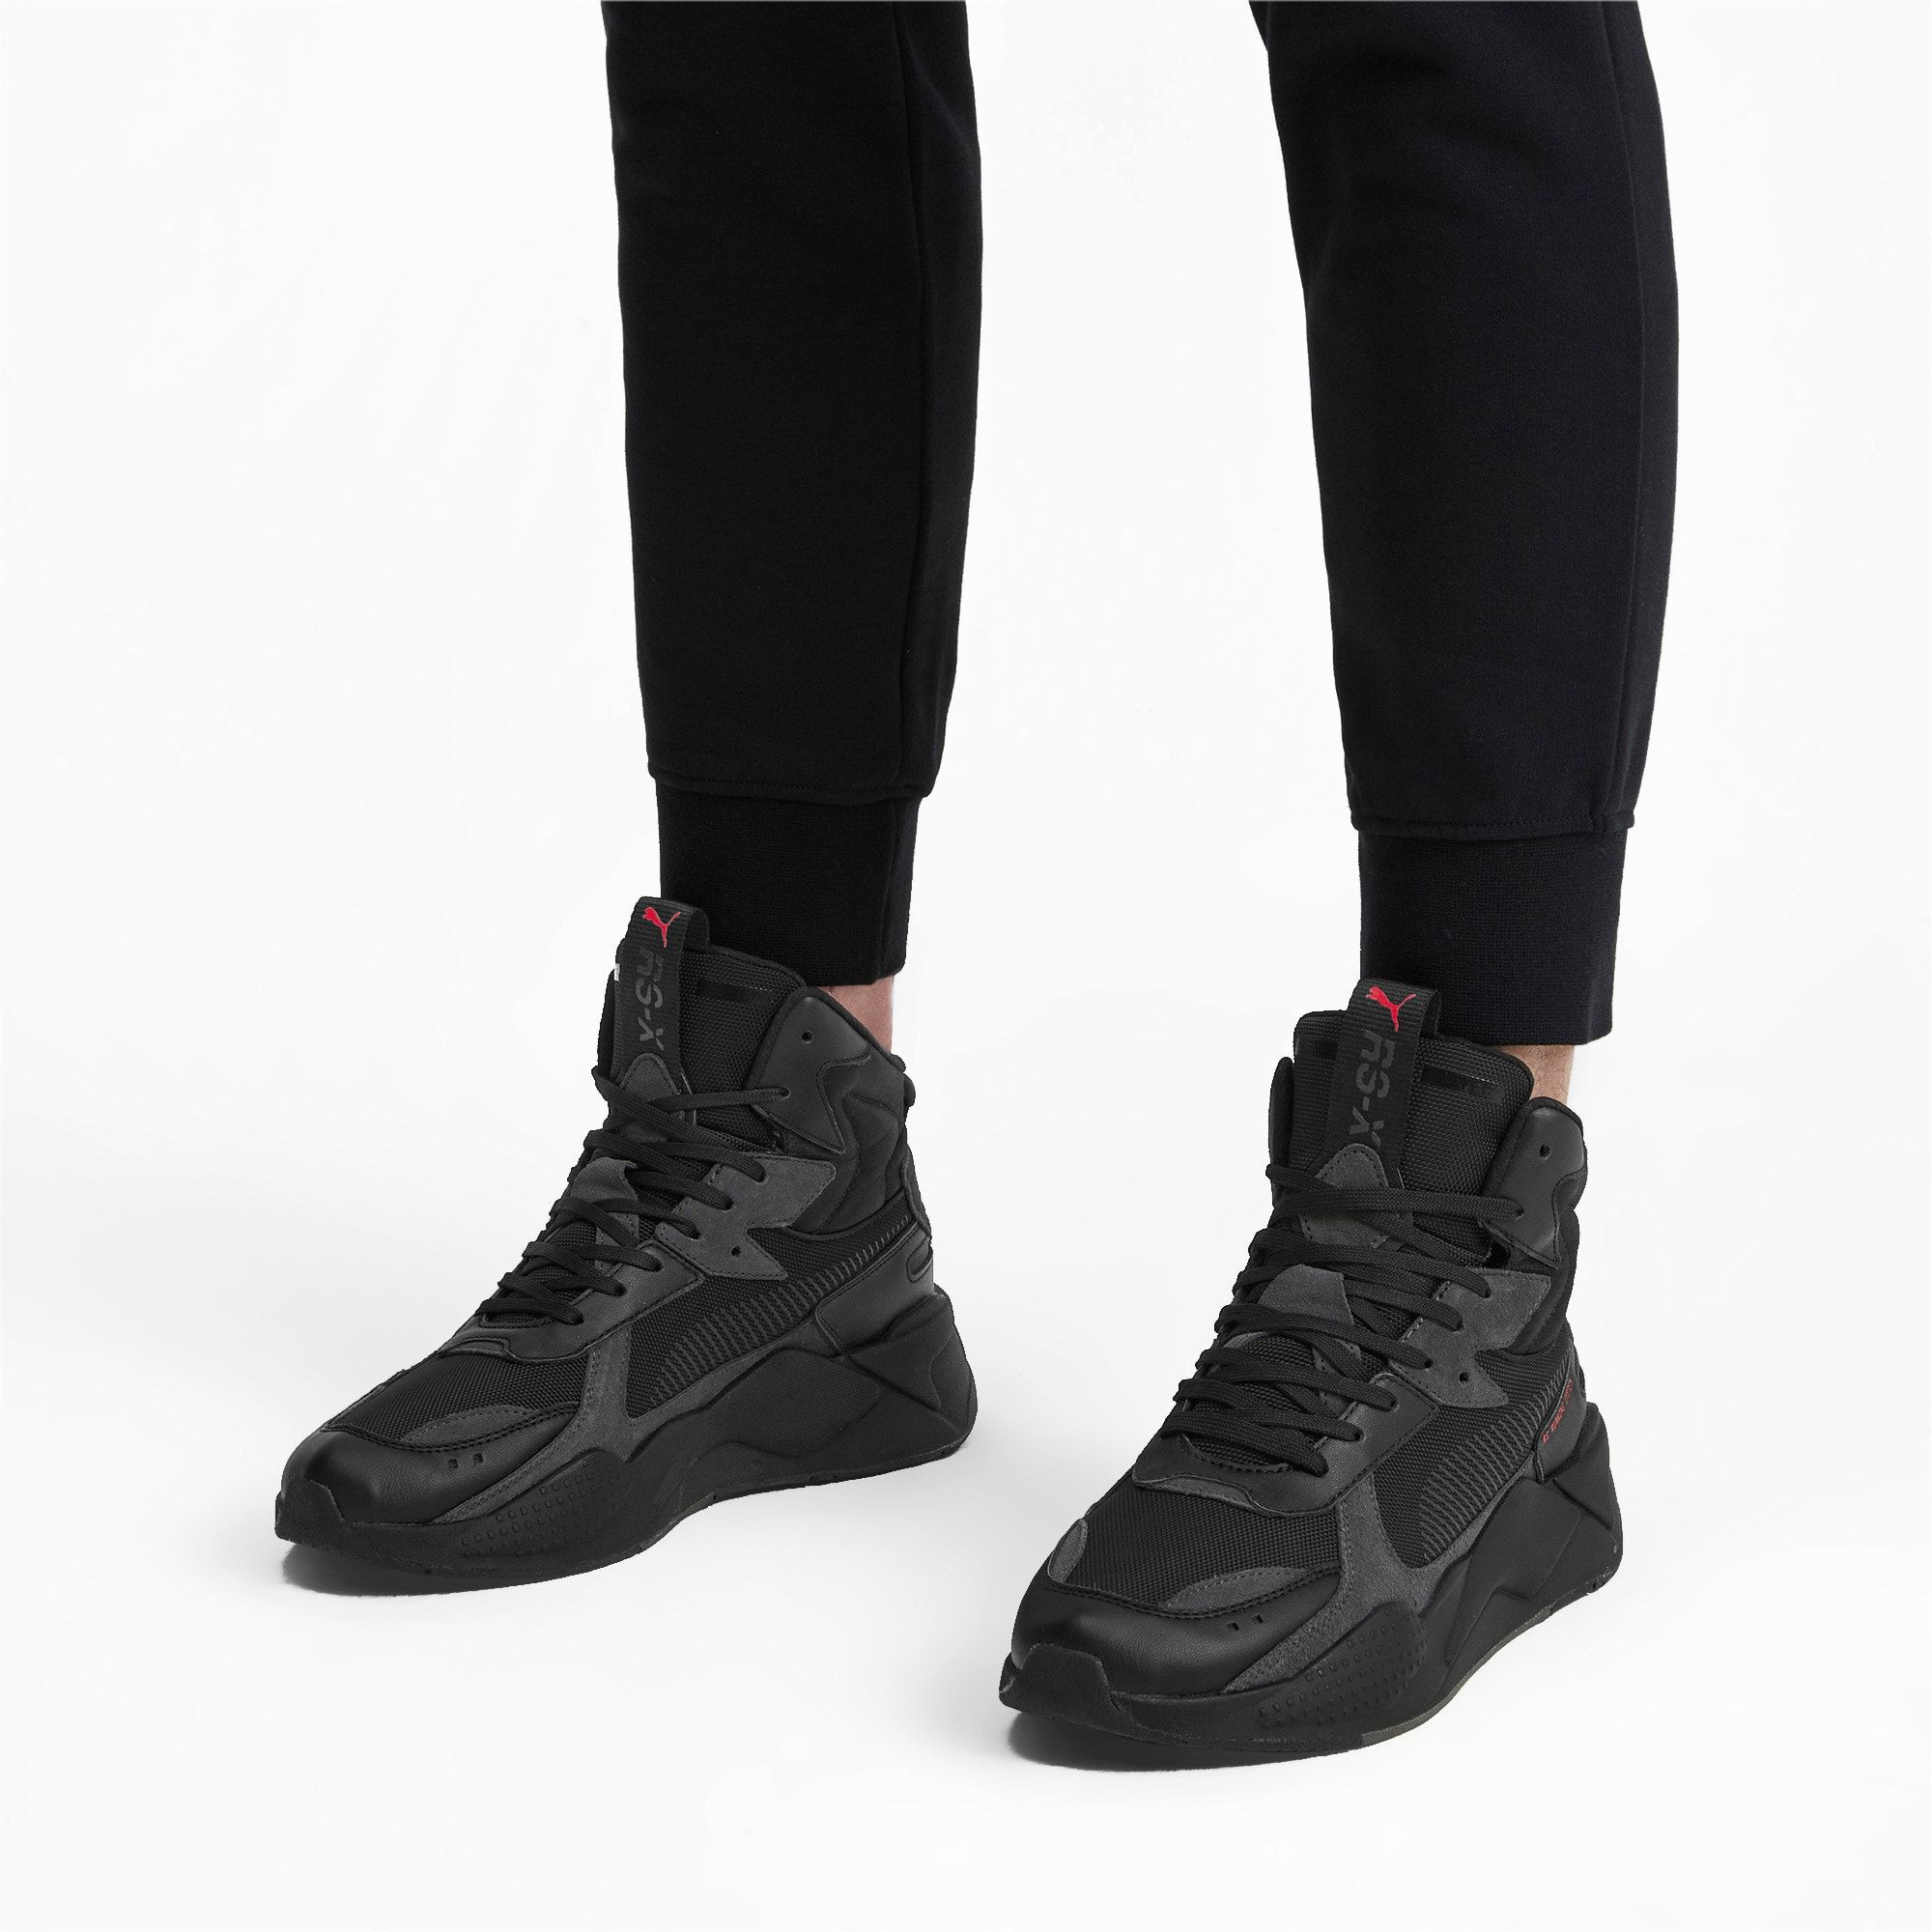 PUMA Rs X Midtop Binary Code Trainers in Black size 8.5